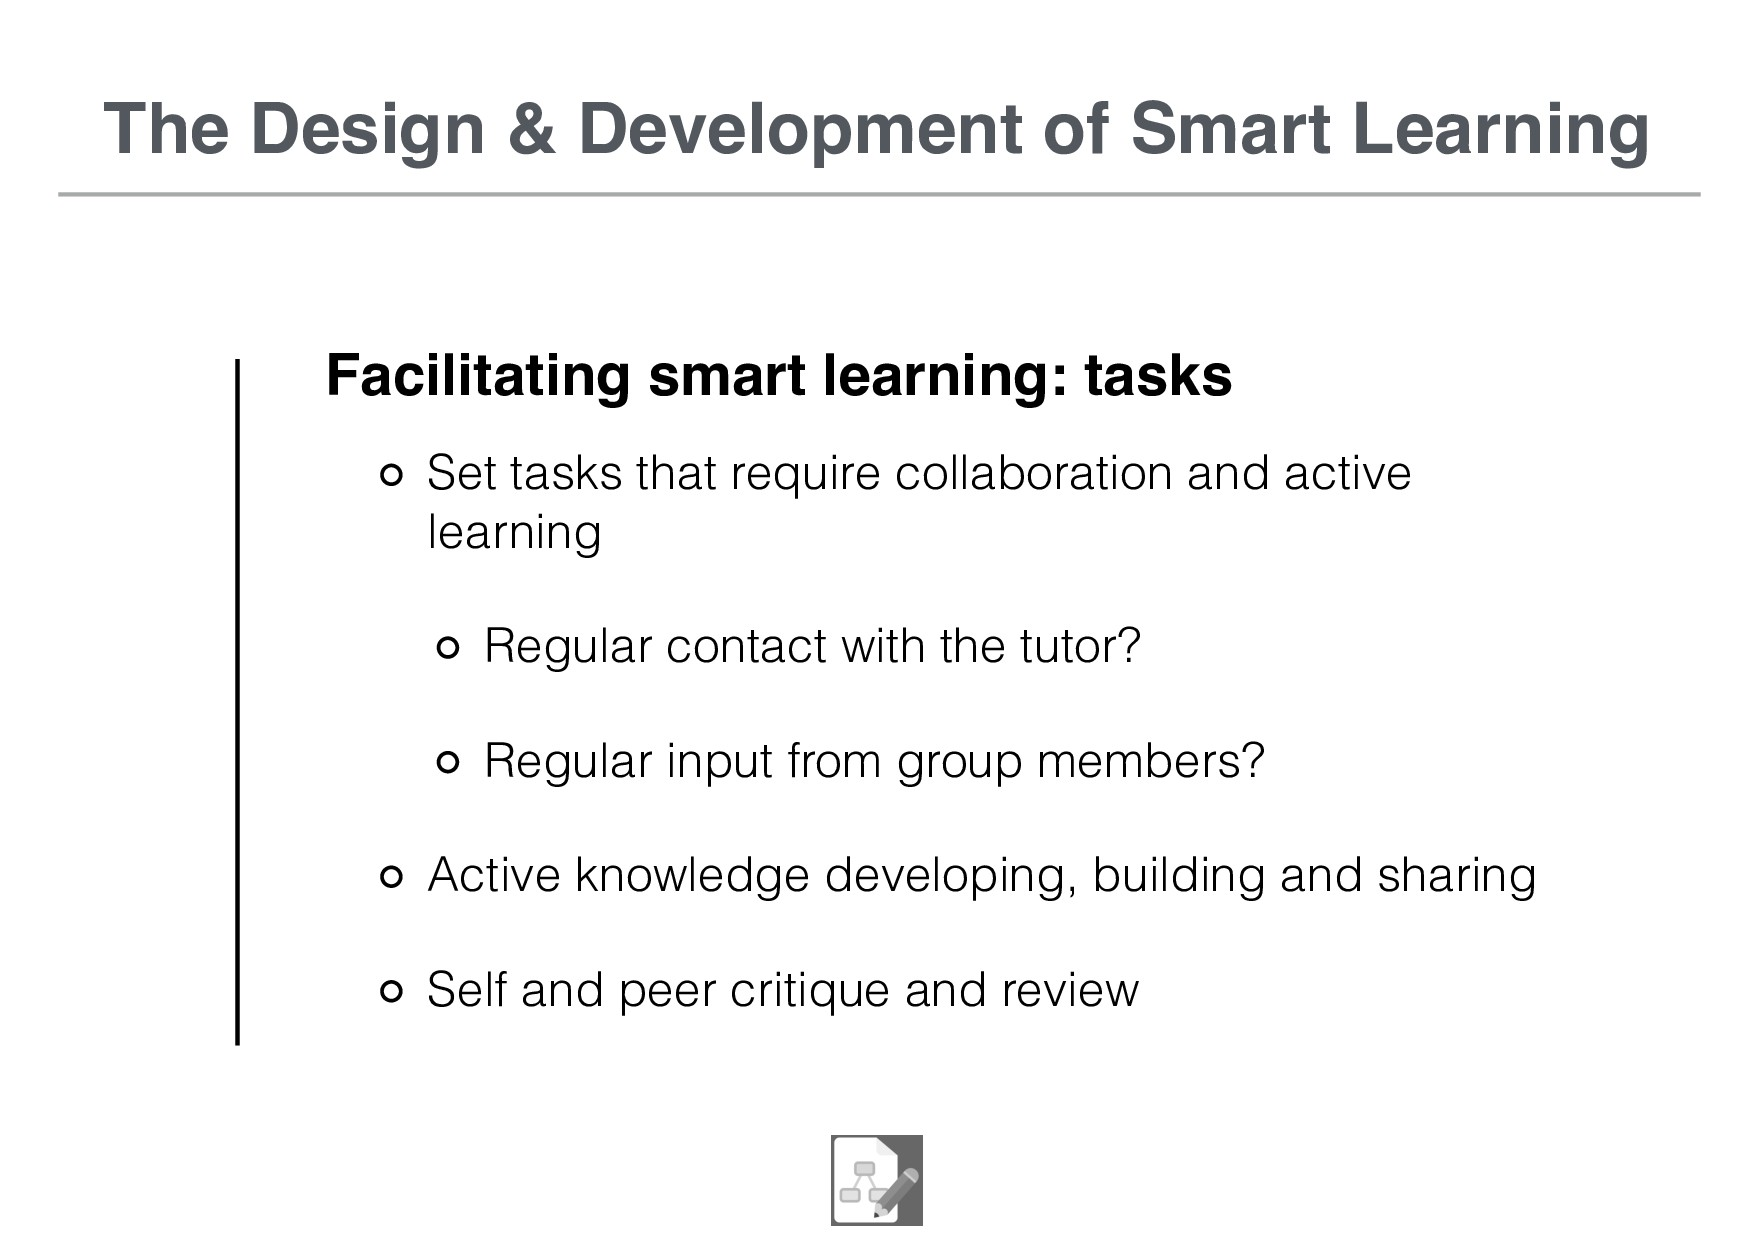 The Design & Development of Smart Learning Faci...